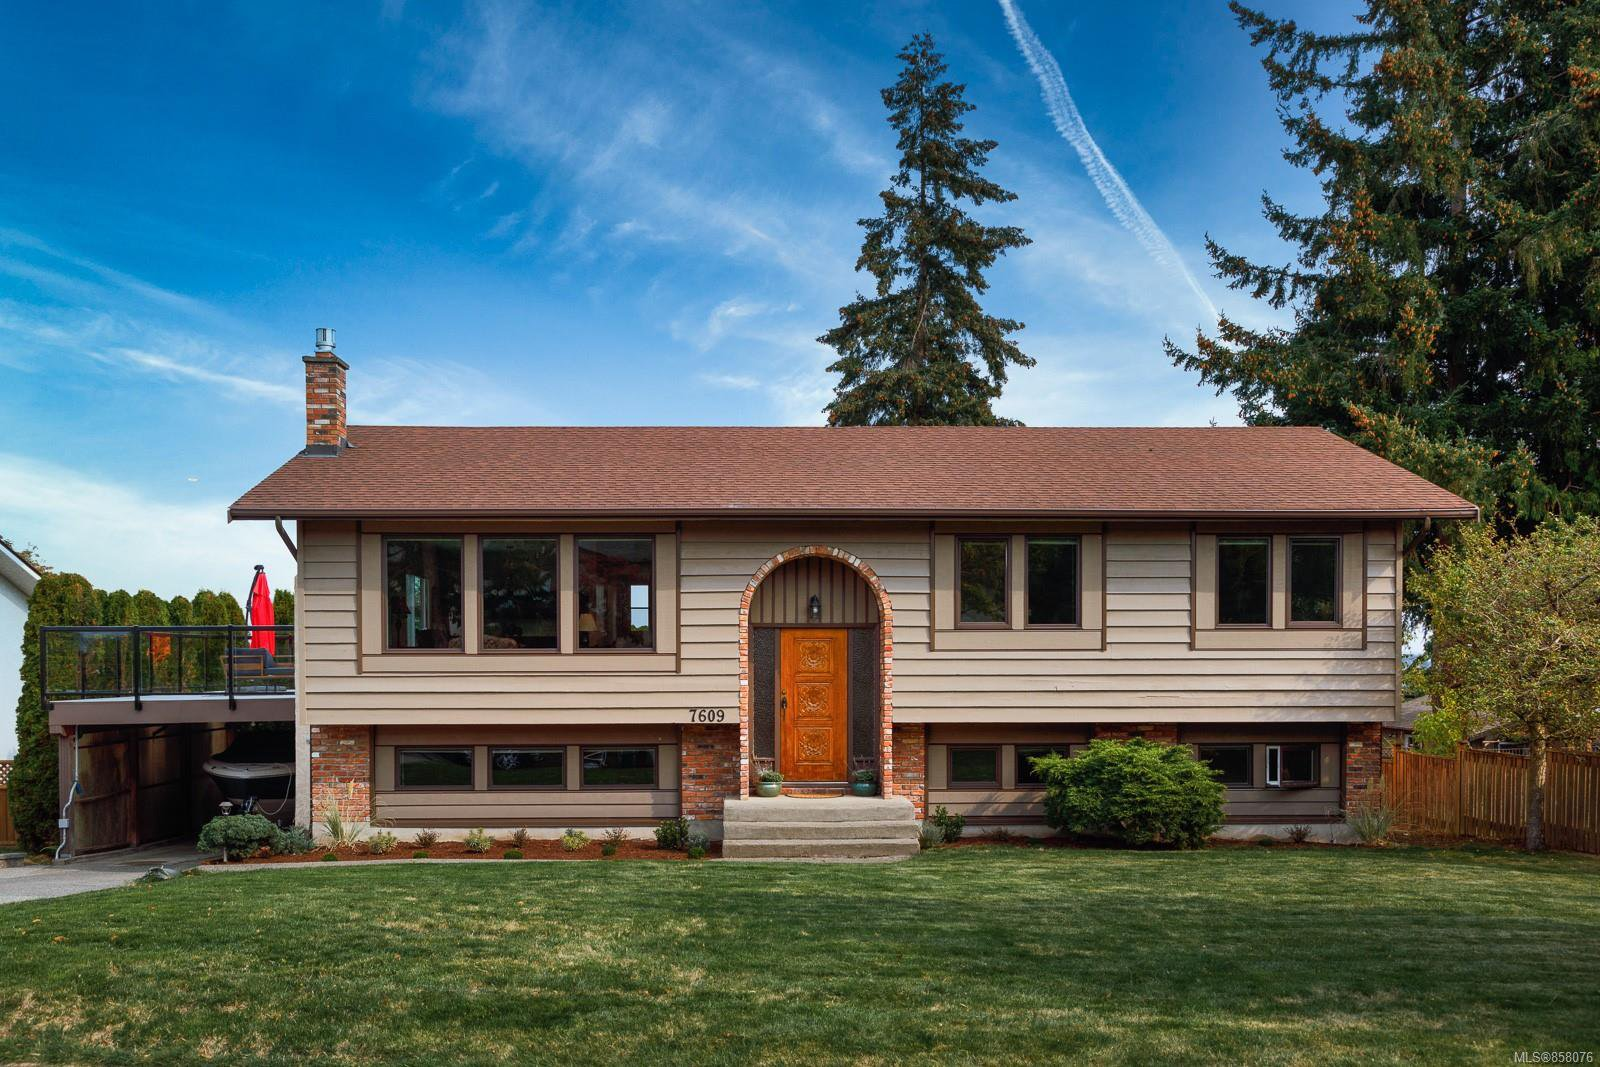 Main Photo: 7609 Blossom Park Pl in : CS Saanichton House for sale (Central Saanich)  : MLS®# 858076